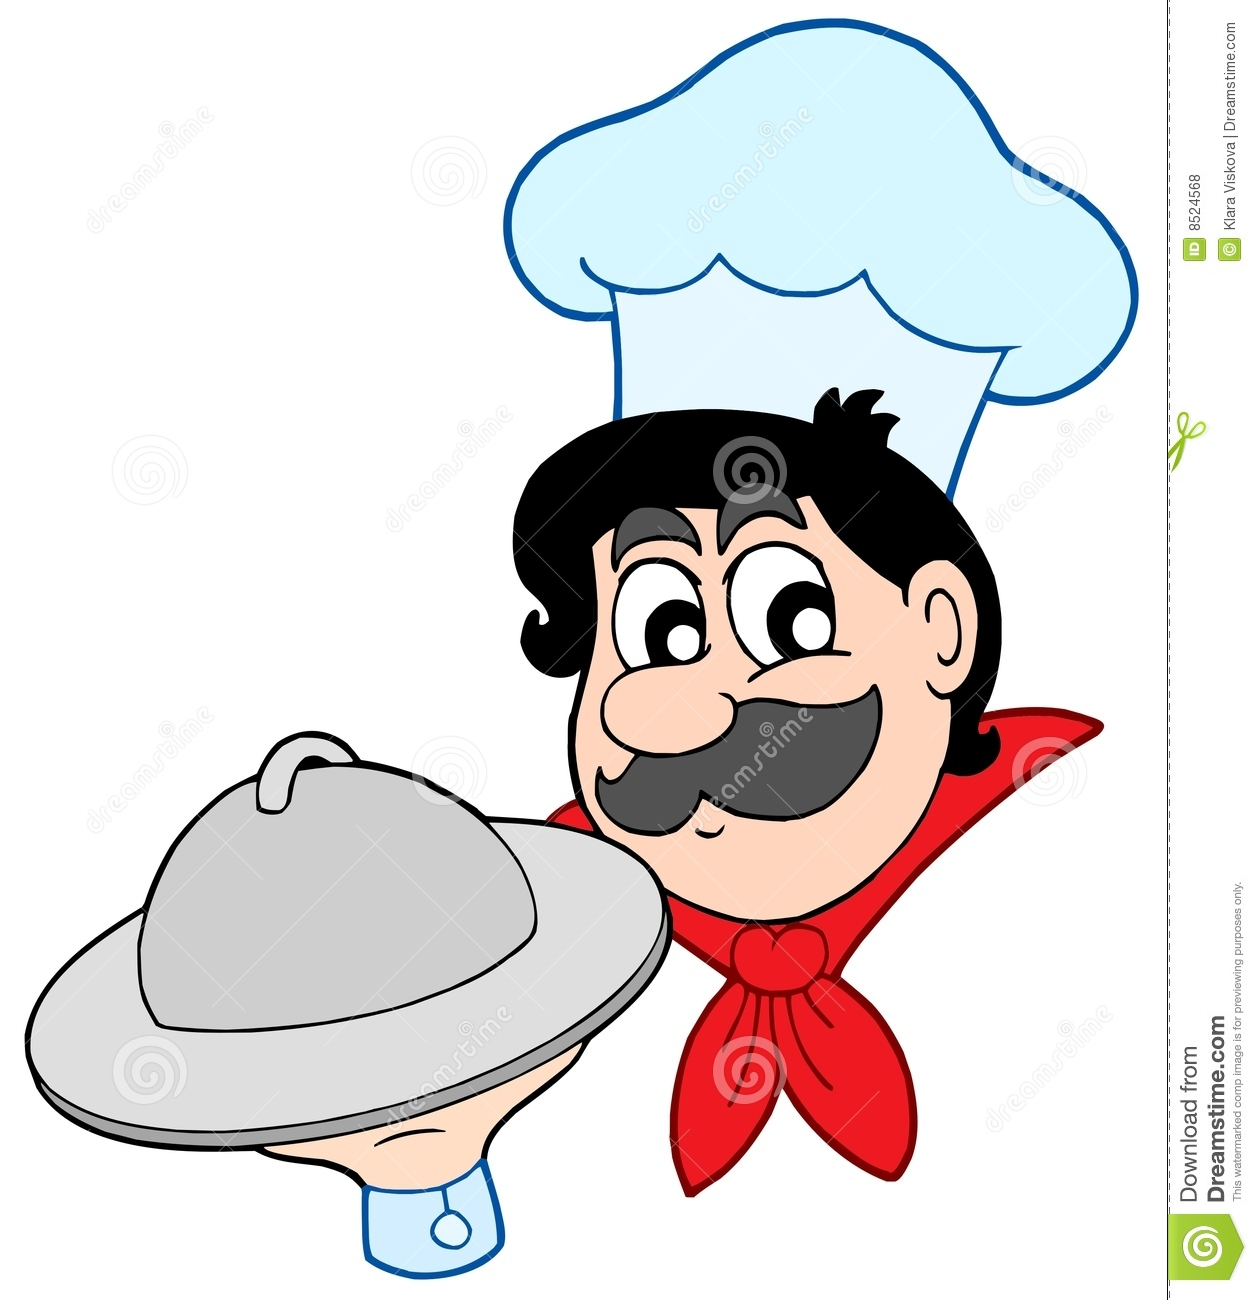 how to draw cartoon chef in photoshop